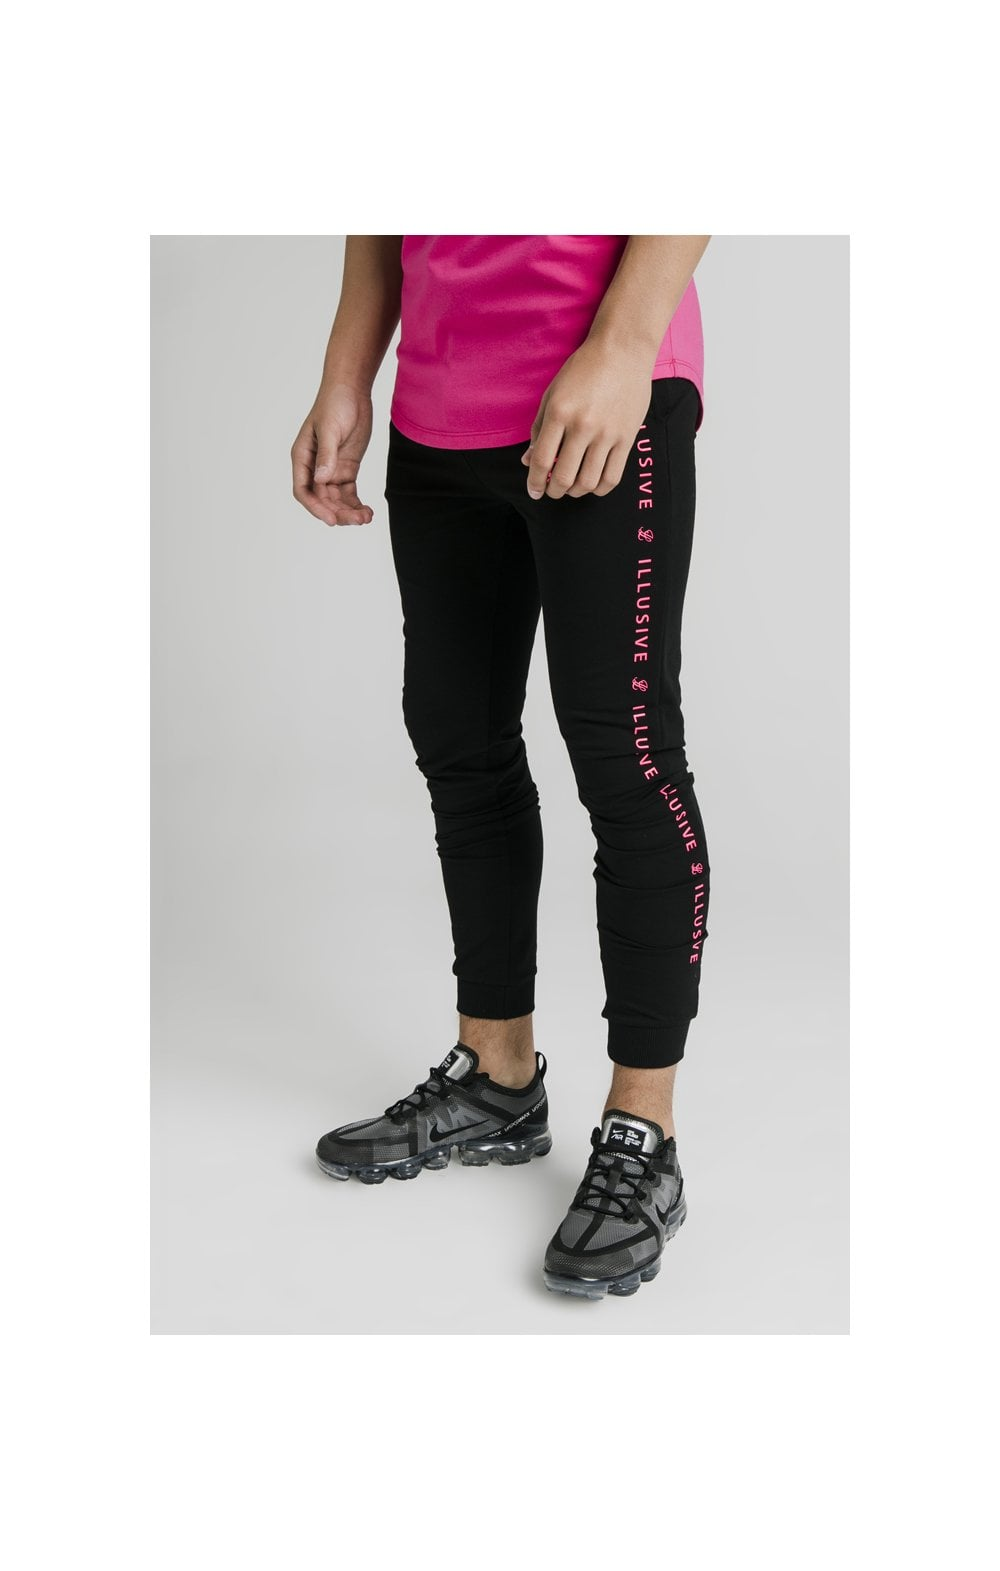 Load image into Gallery viewer, Illusive London Cuffed Joggers – Black & Pink